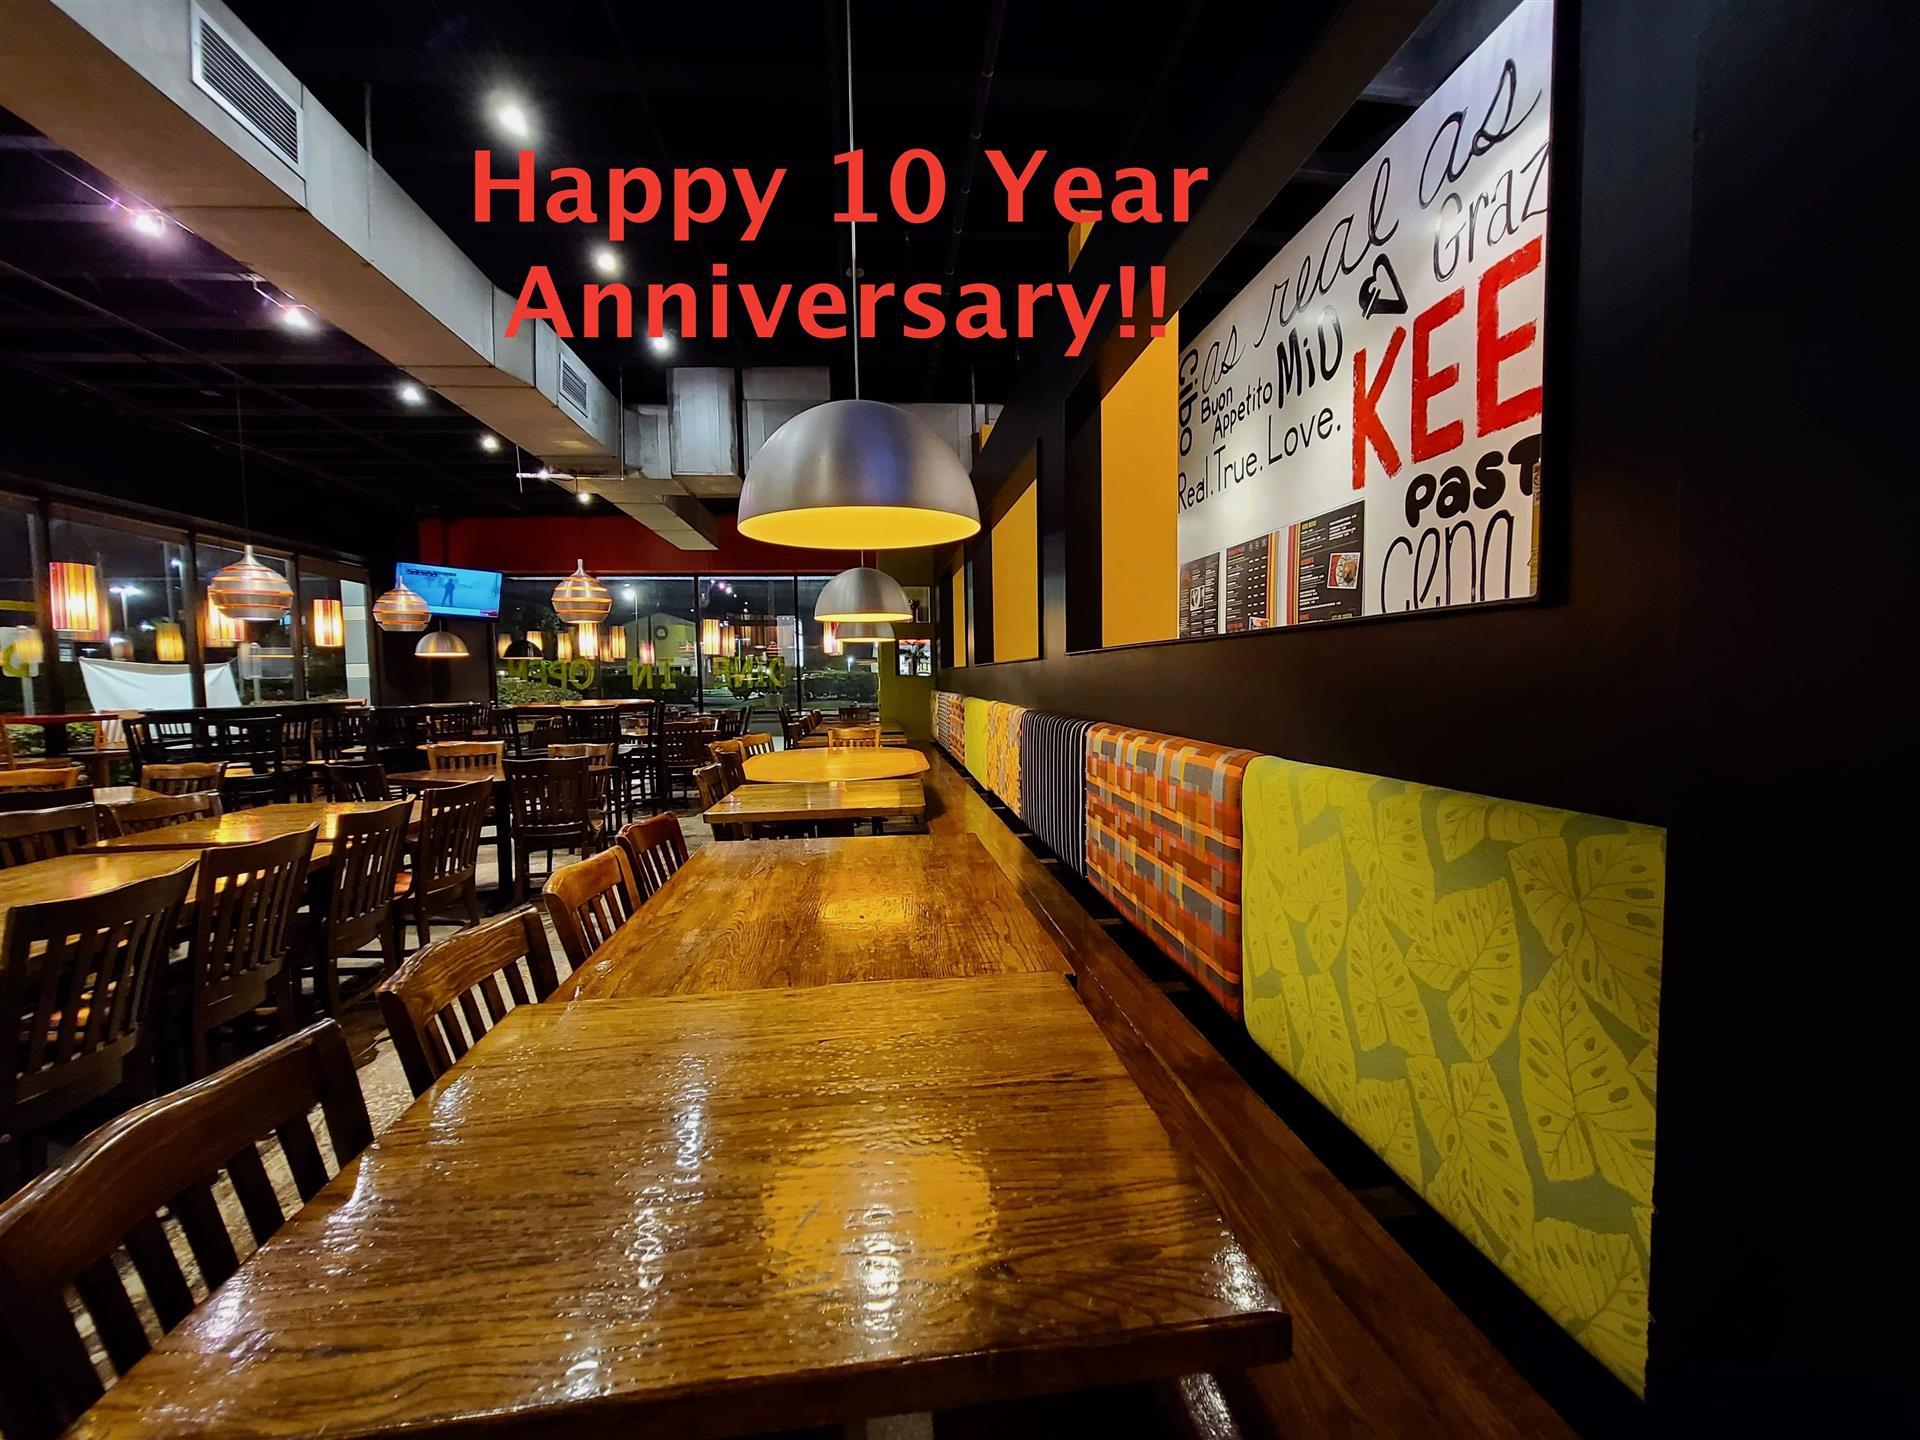 Restaurant Redesign - for 10th anniversary